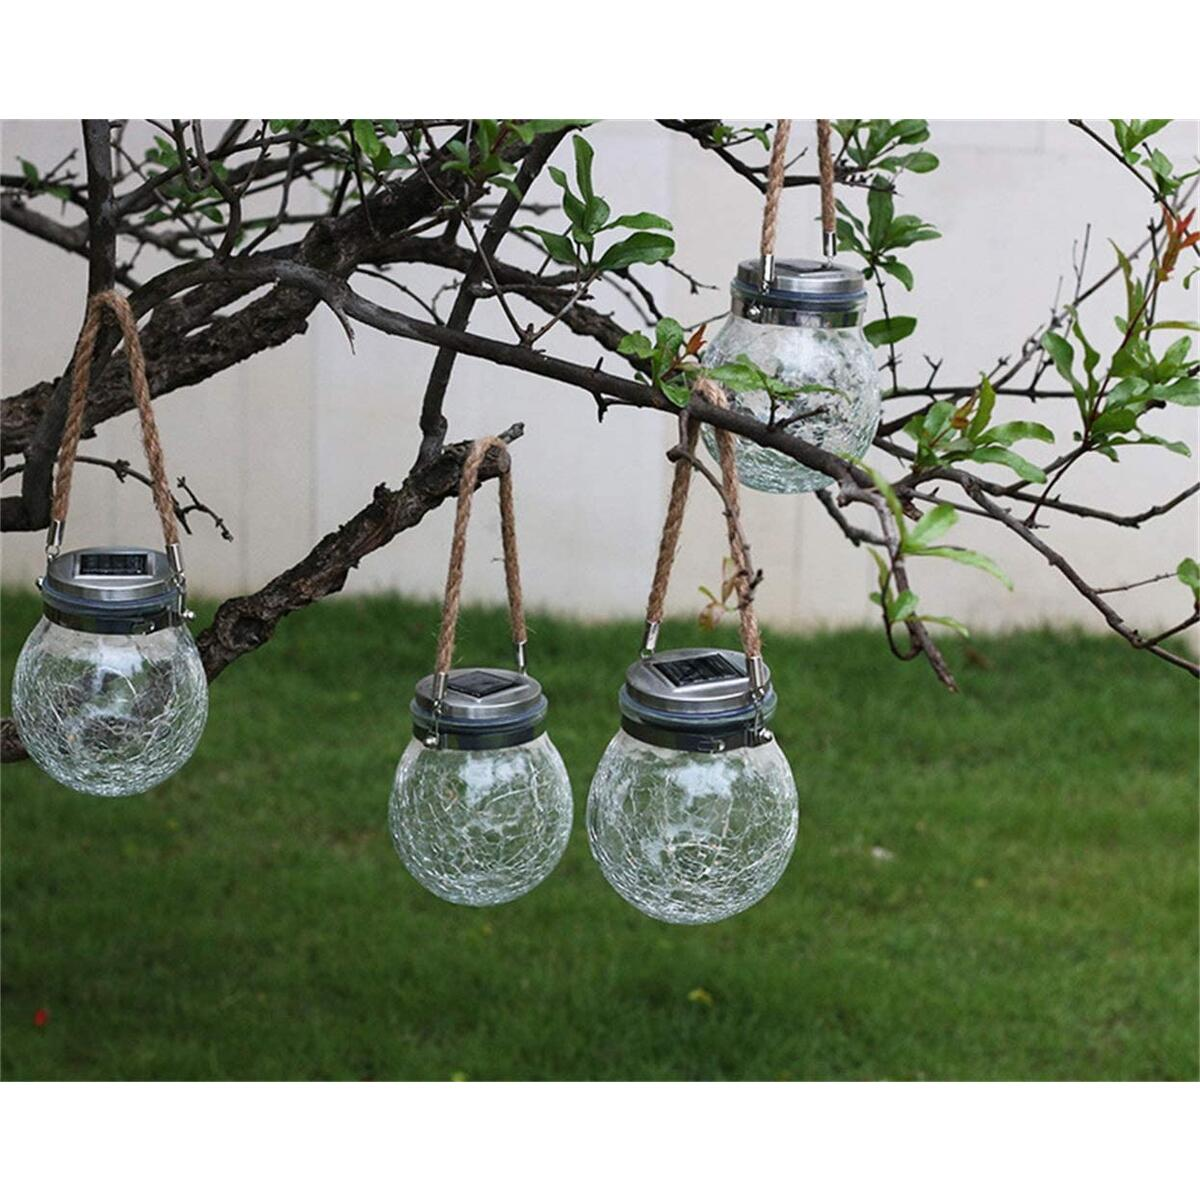 Outdoor Solar Lights,Hanging Solar Lantern for Garden, Balcony, Yard, Path, Fence Decoration,LED Lights with Cracked Jar Body,Weatherproof and Auto ON/OFF Sensor(Multi-color 2pcs